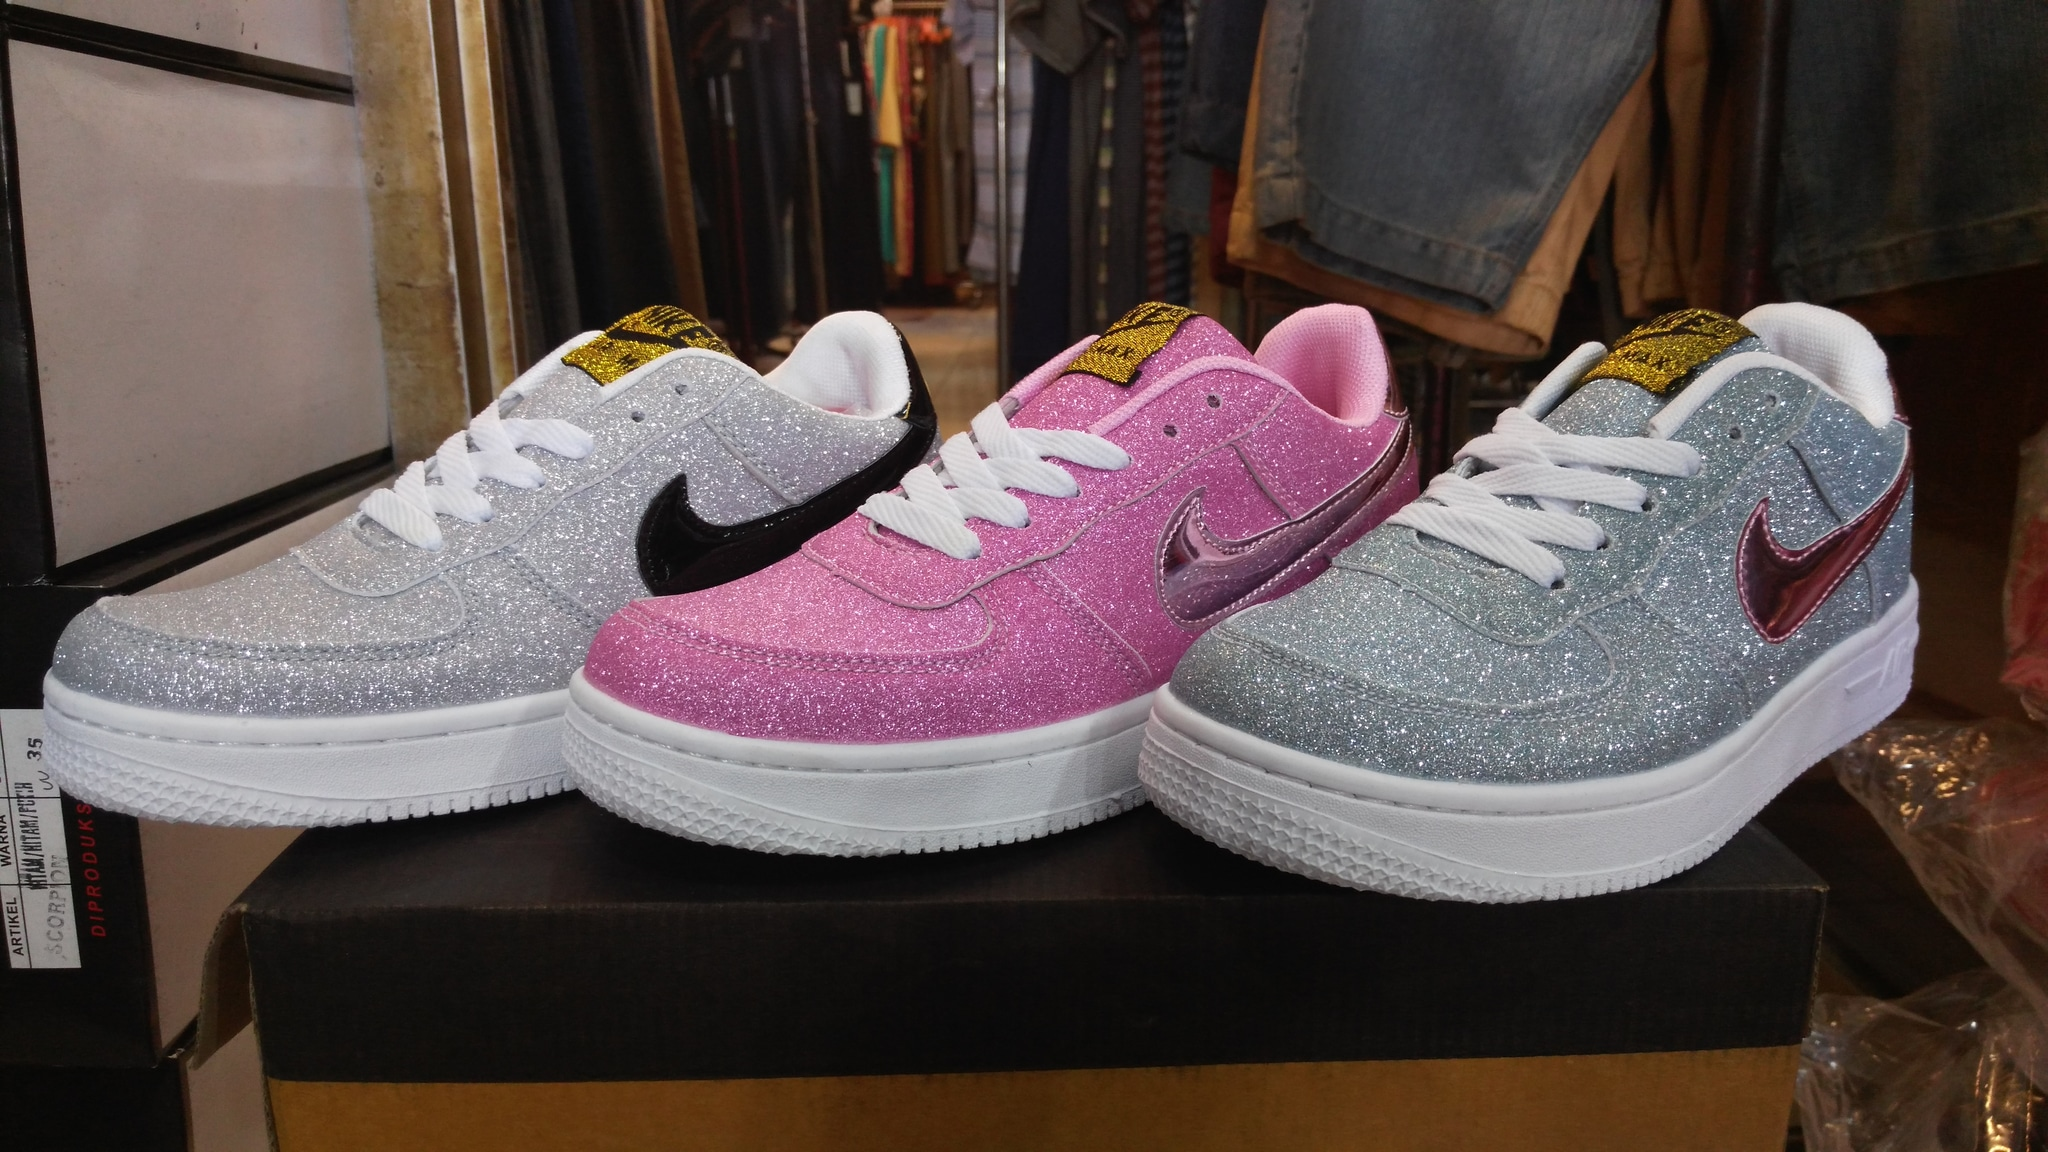 The On foot. Air Force 1 . All star pack